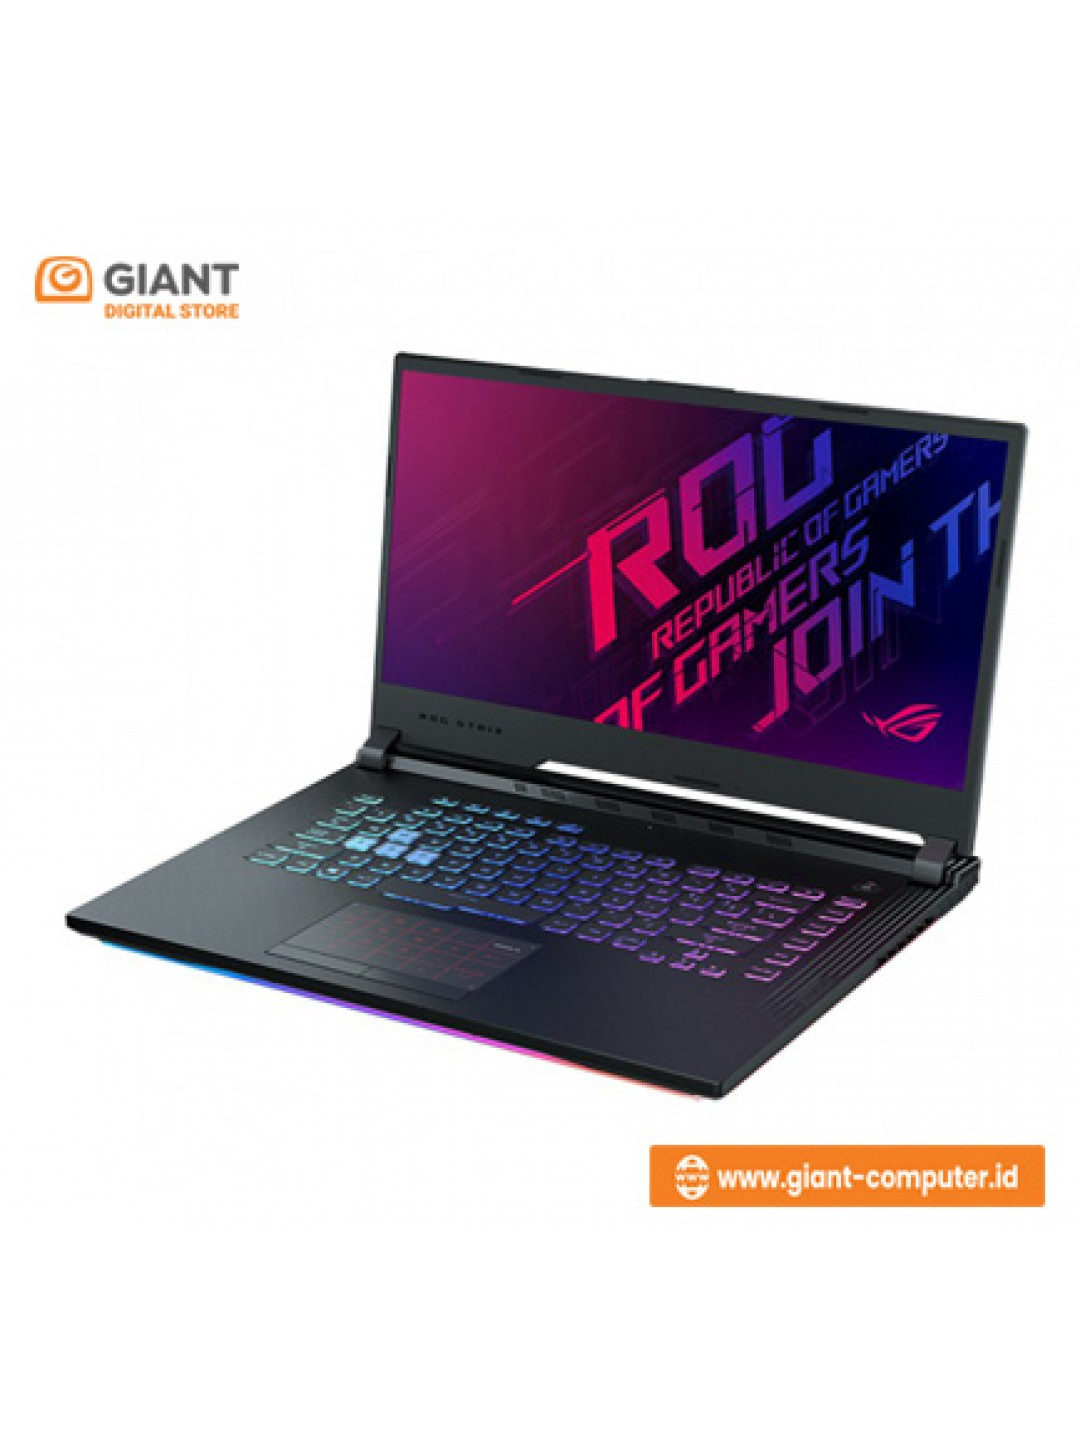 LAPTOP ASUS ROG G512LI-I565B6T (I5-10300H/SSD 512GB/GTX1650TI 4GB/RGB/15.6Inc 144Hz/WIN10) Black